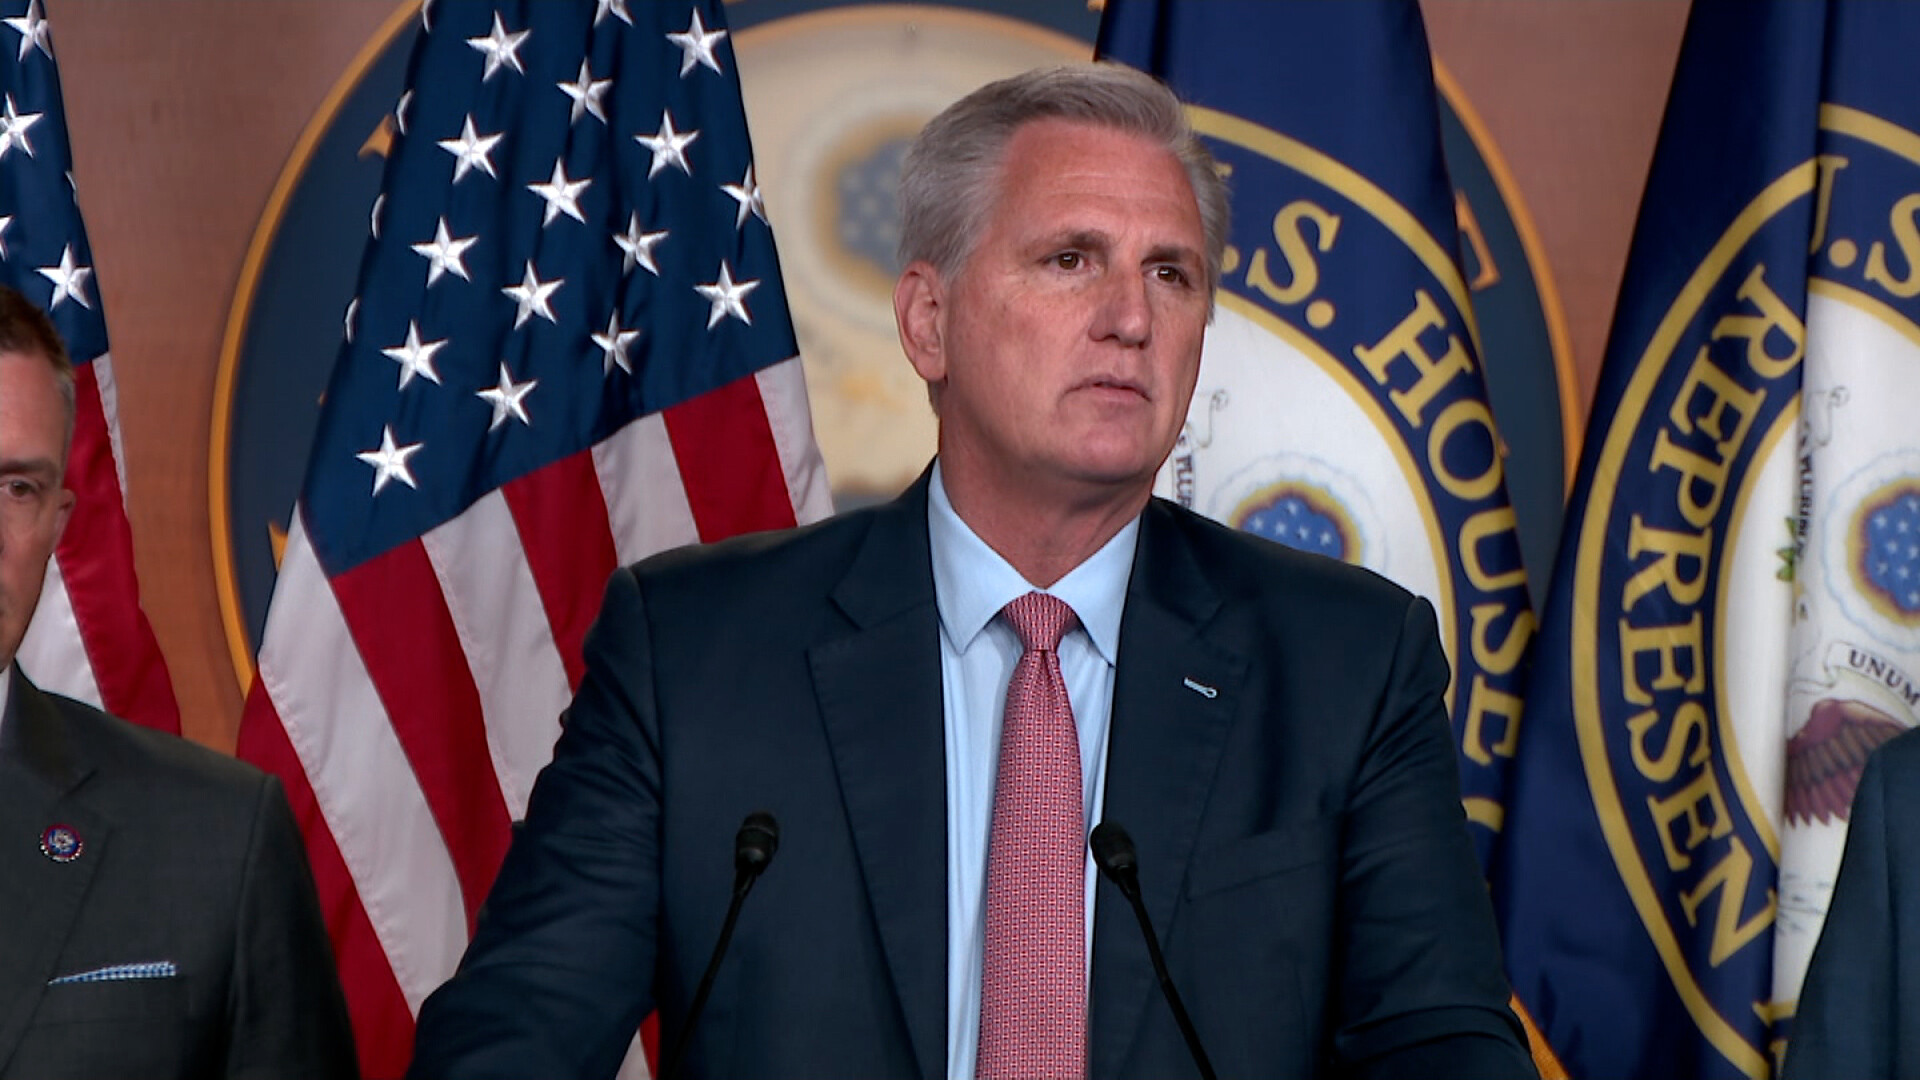 Fact check: Republican House leader Kevin McCarthy makes at least 5 false claims in 7-minute Fox News interview